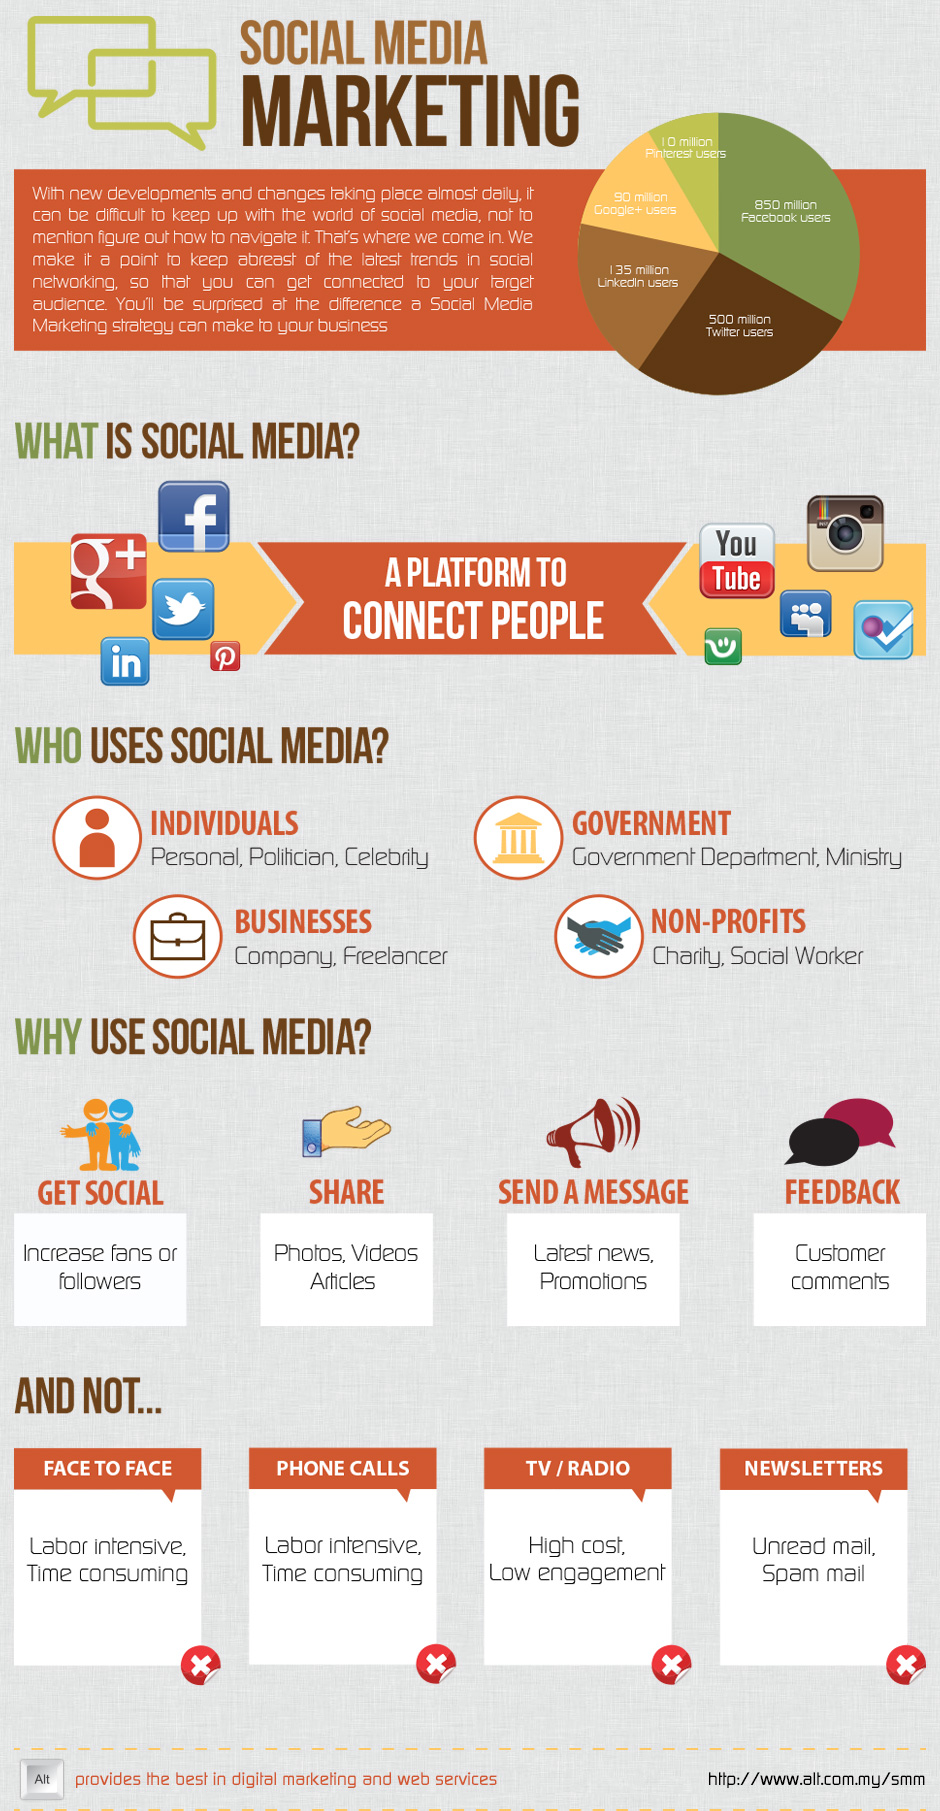 Social Media Marketing - Infographic